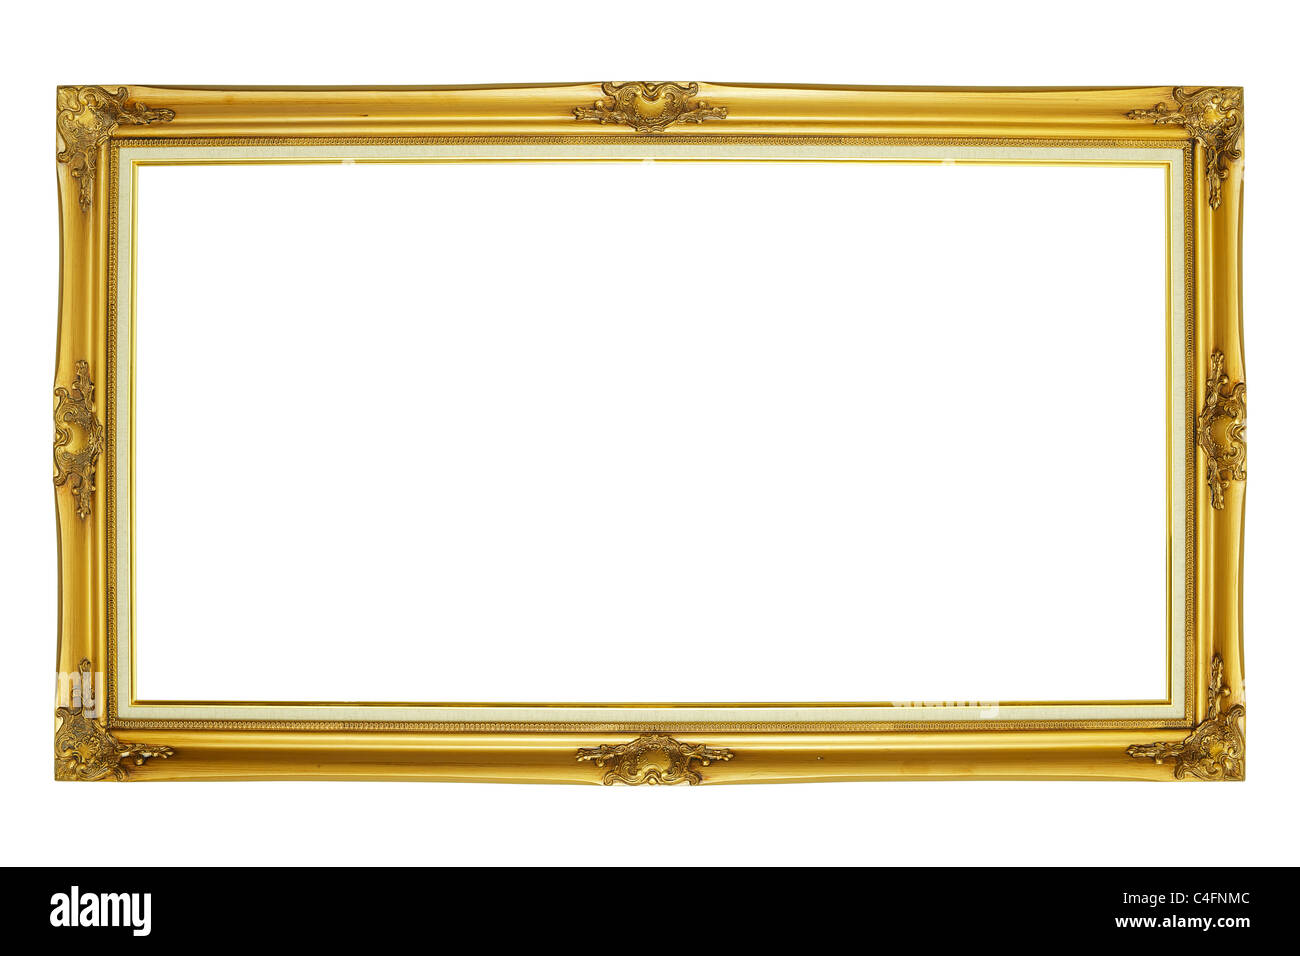 Wooden frame for paintings or photos, isolated on white background - Stock Image